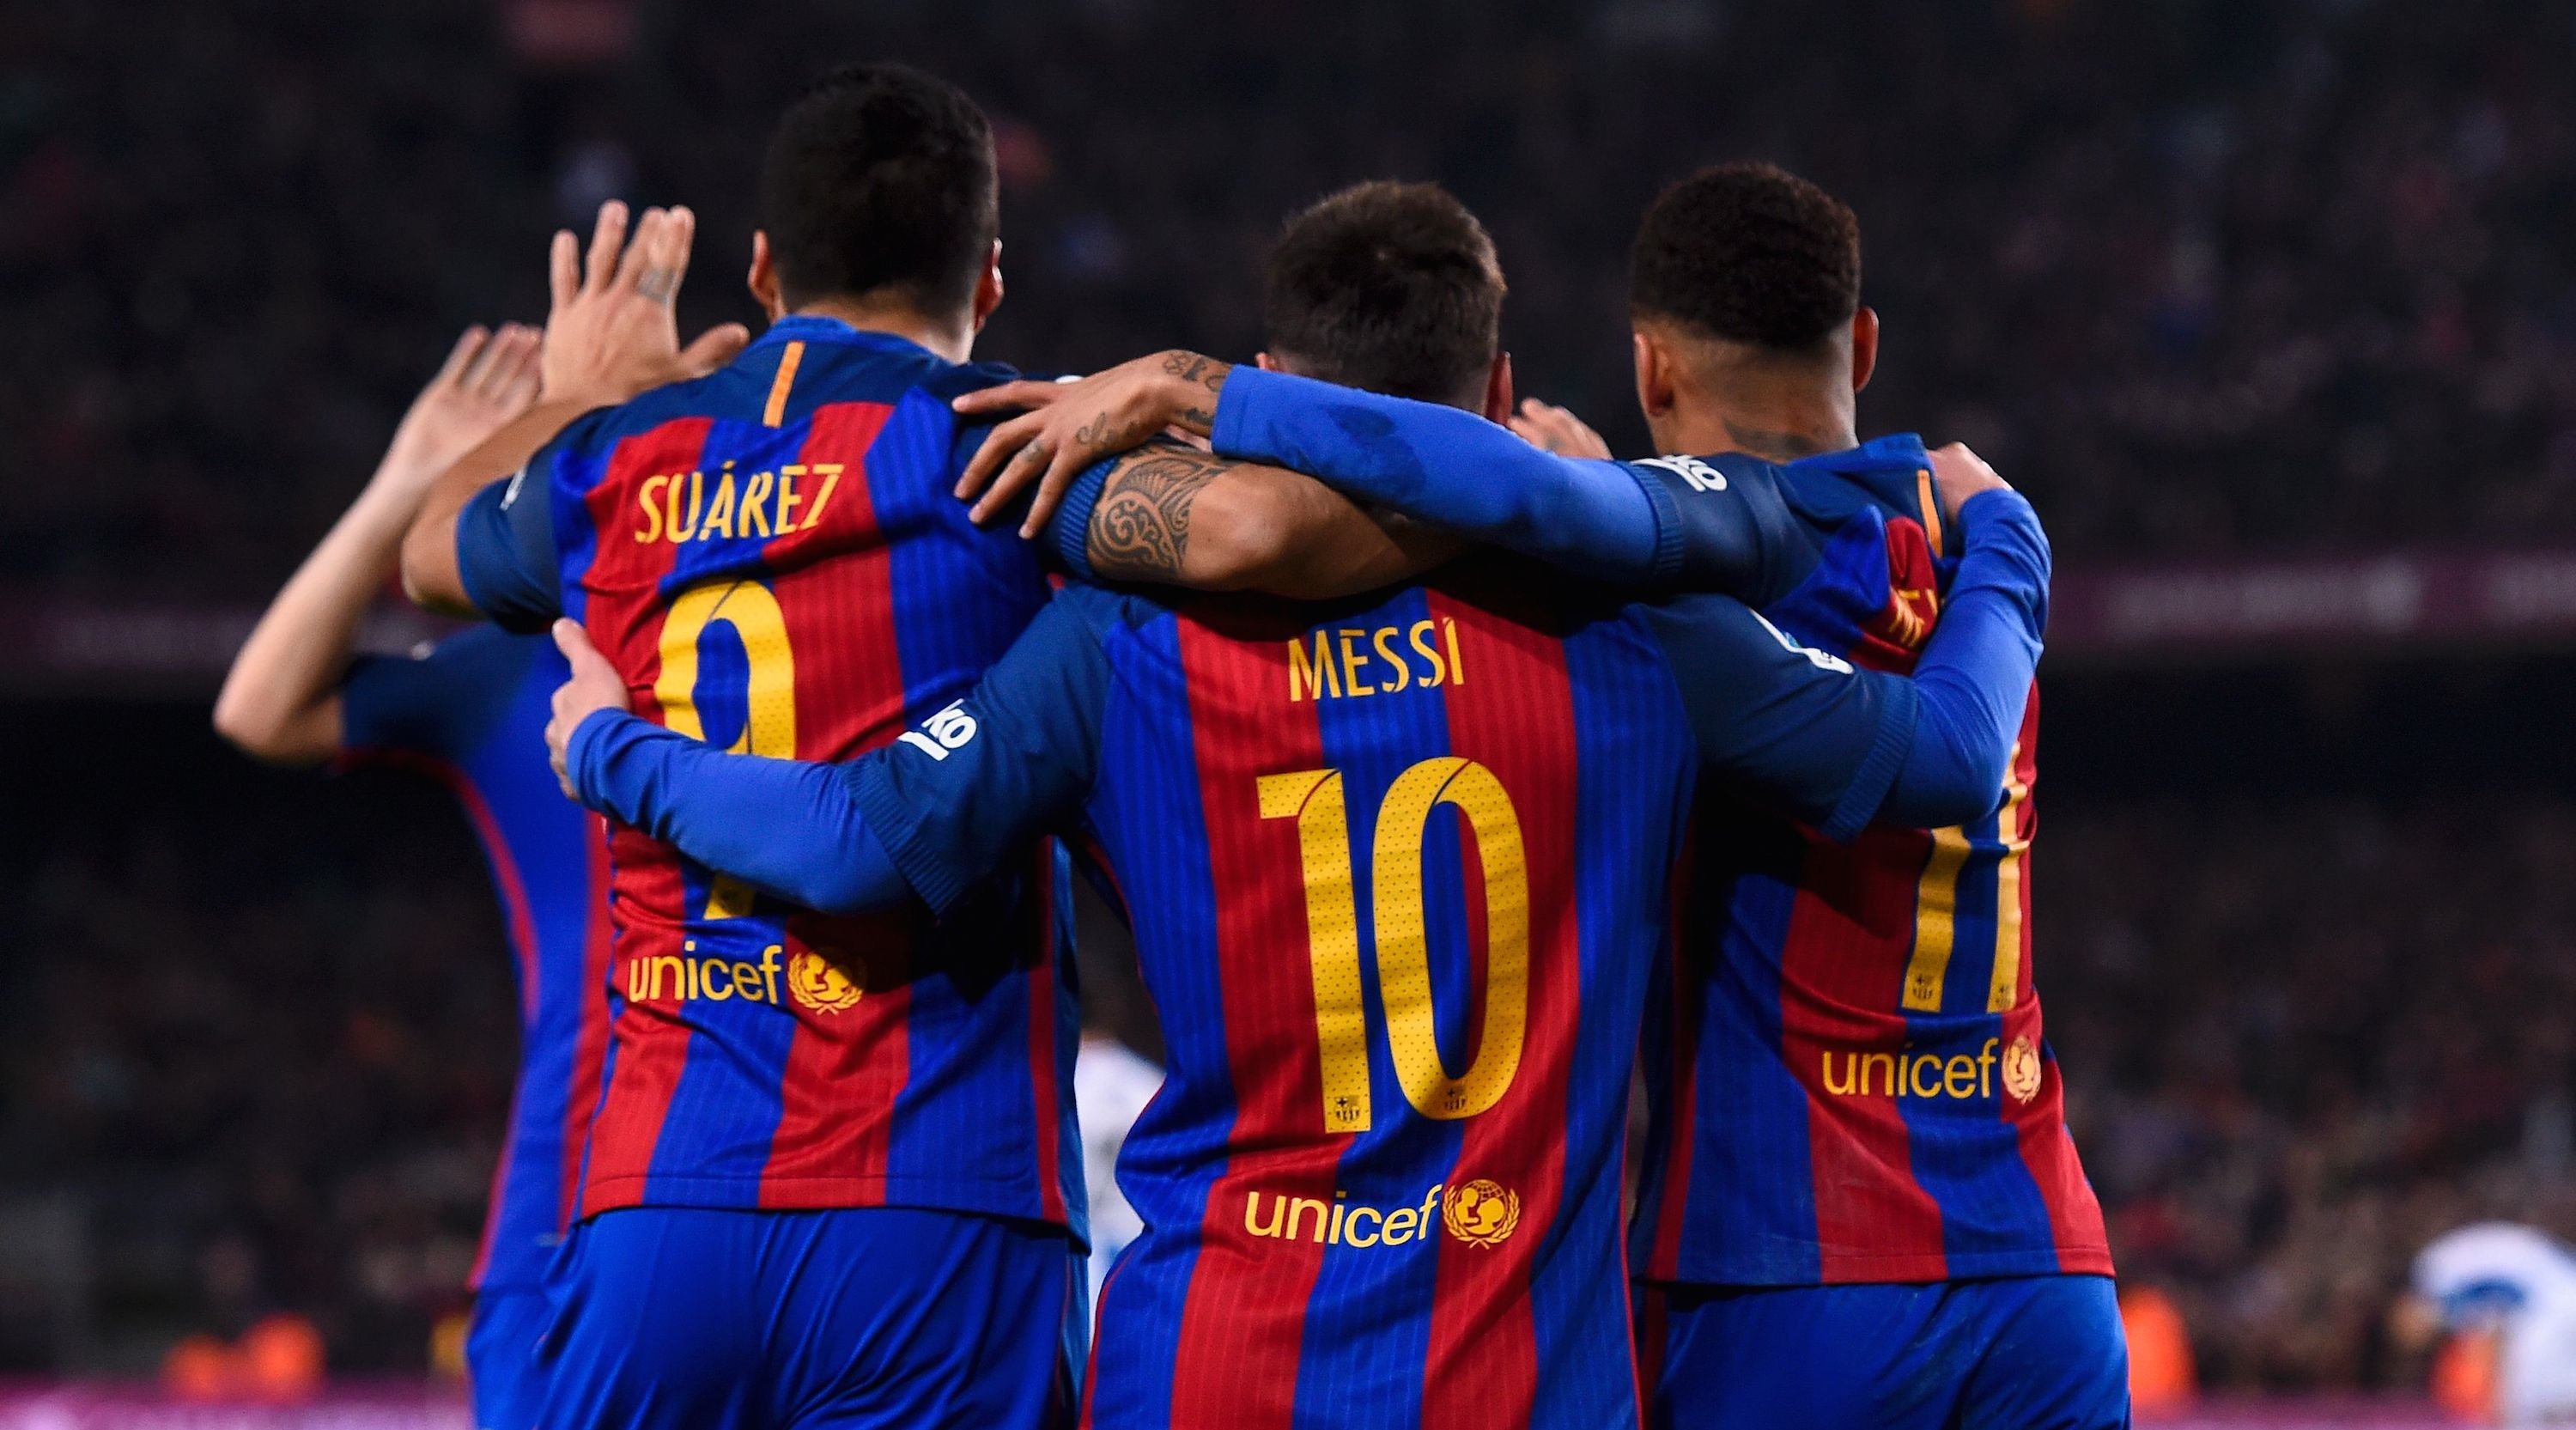 TOPSHOT - Barcelona's Uruguayan forward Luis Suarez (L) celebrates a goal with teammates Argentinian forward Lionel Messi (C) and Brazilian forward Neymar during the Spanish league football match FC Barcelona vs RCD Espanyol at the Camp Nou stadium in Barcelona on December 18, 2016. / AFP / JOSEP LAGO (Photo credit should read JOSEP LAGO/AFP/Getty Images)